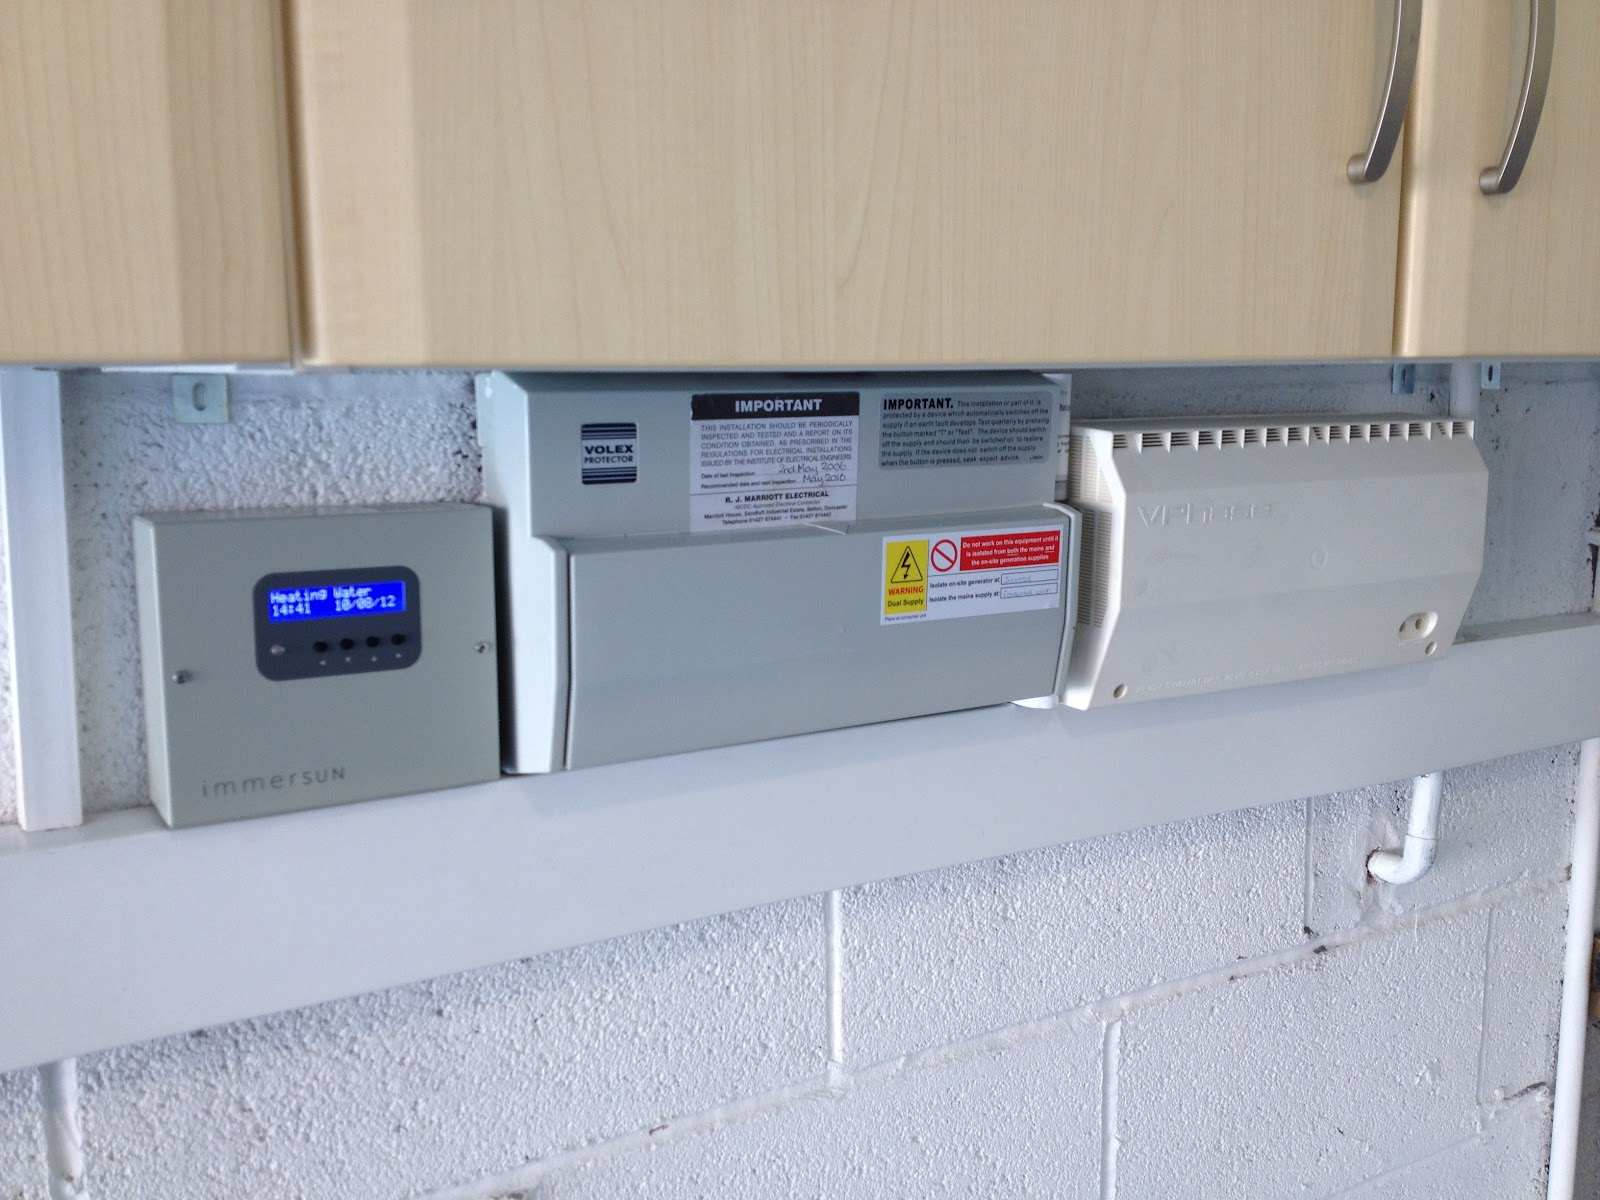 Latest Installations Immersun Solar Pv Immersion Heater